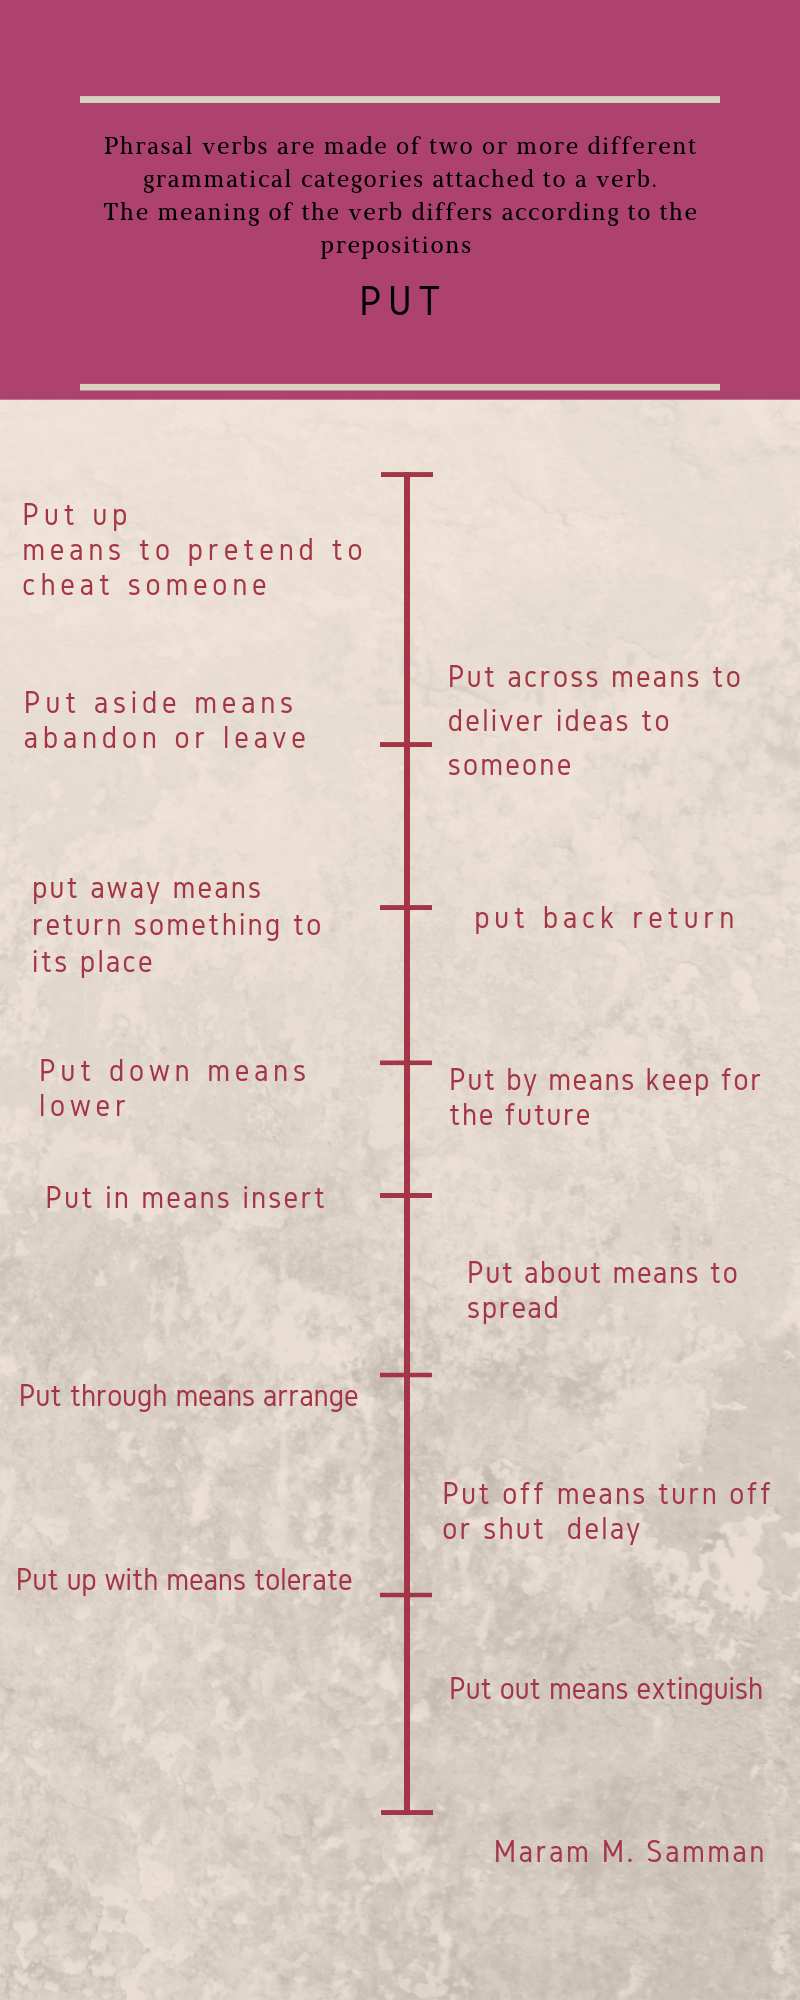 Put as a Phrasal Verb | SHMS - Saudi OER Network